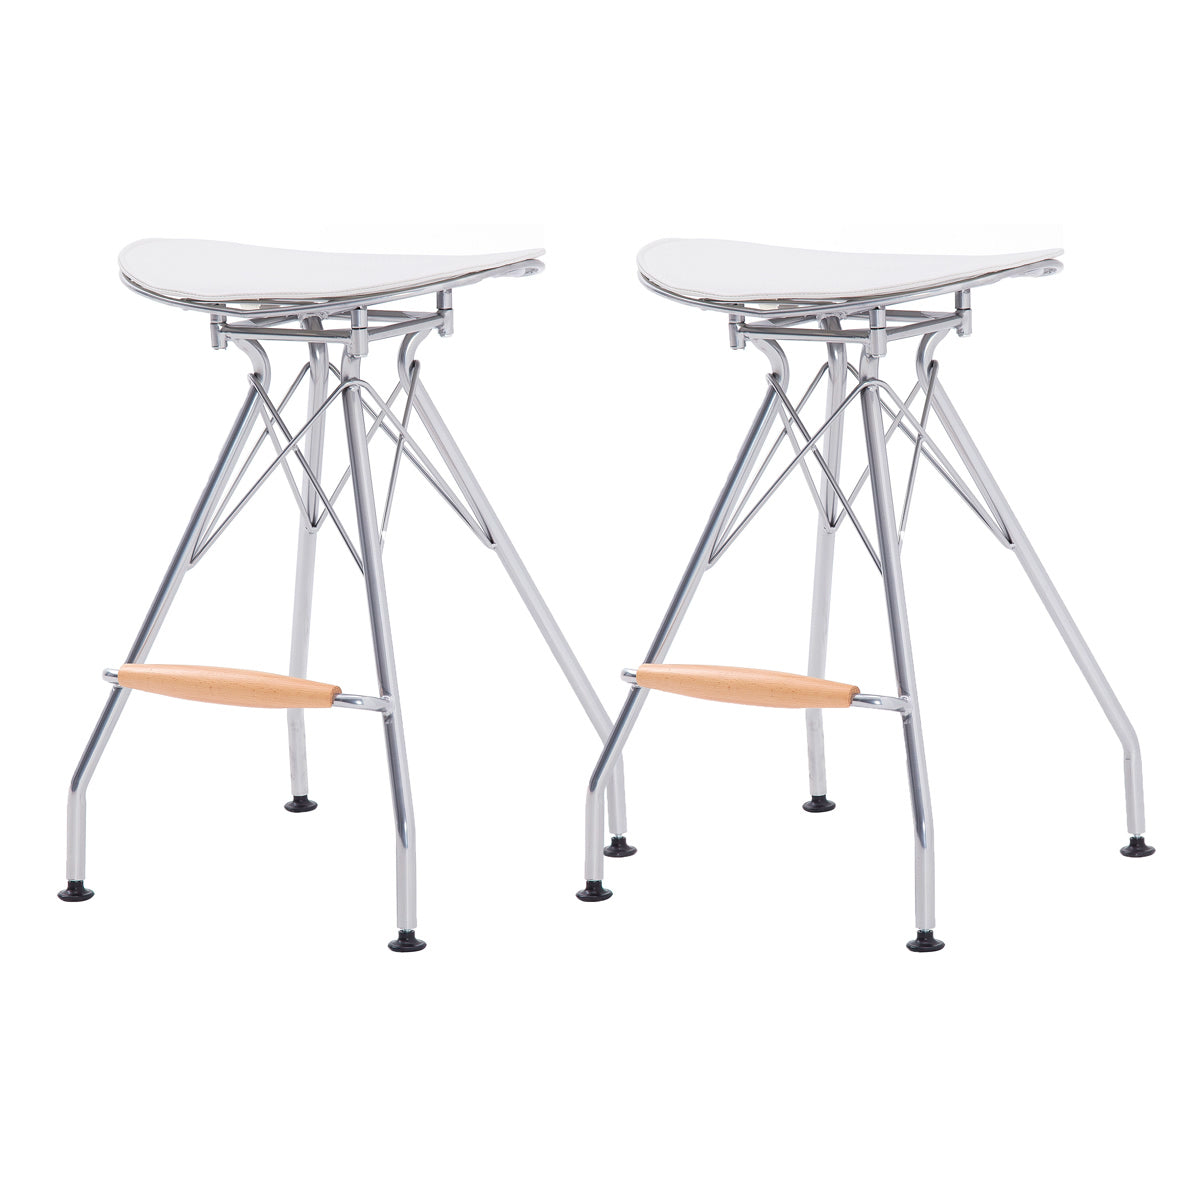 Yara Metal Counter Stool North White Cushion - Set of 2 by New Pacific Direct - 1360003-511